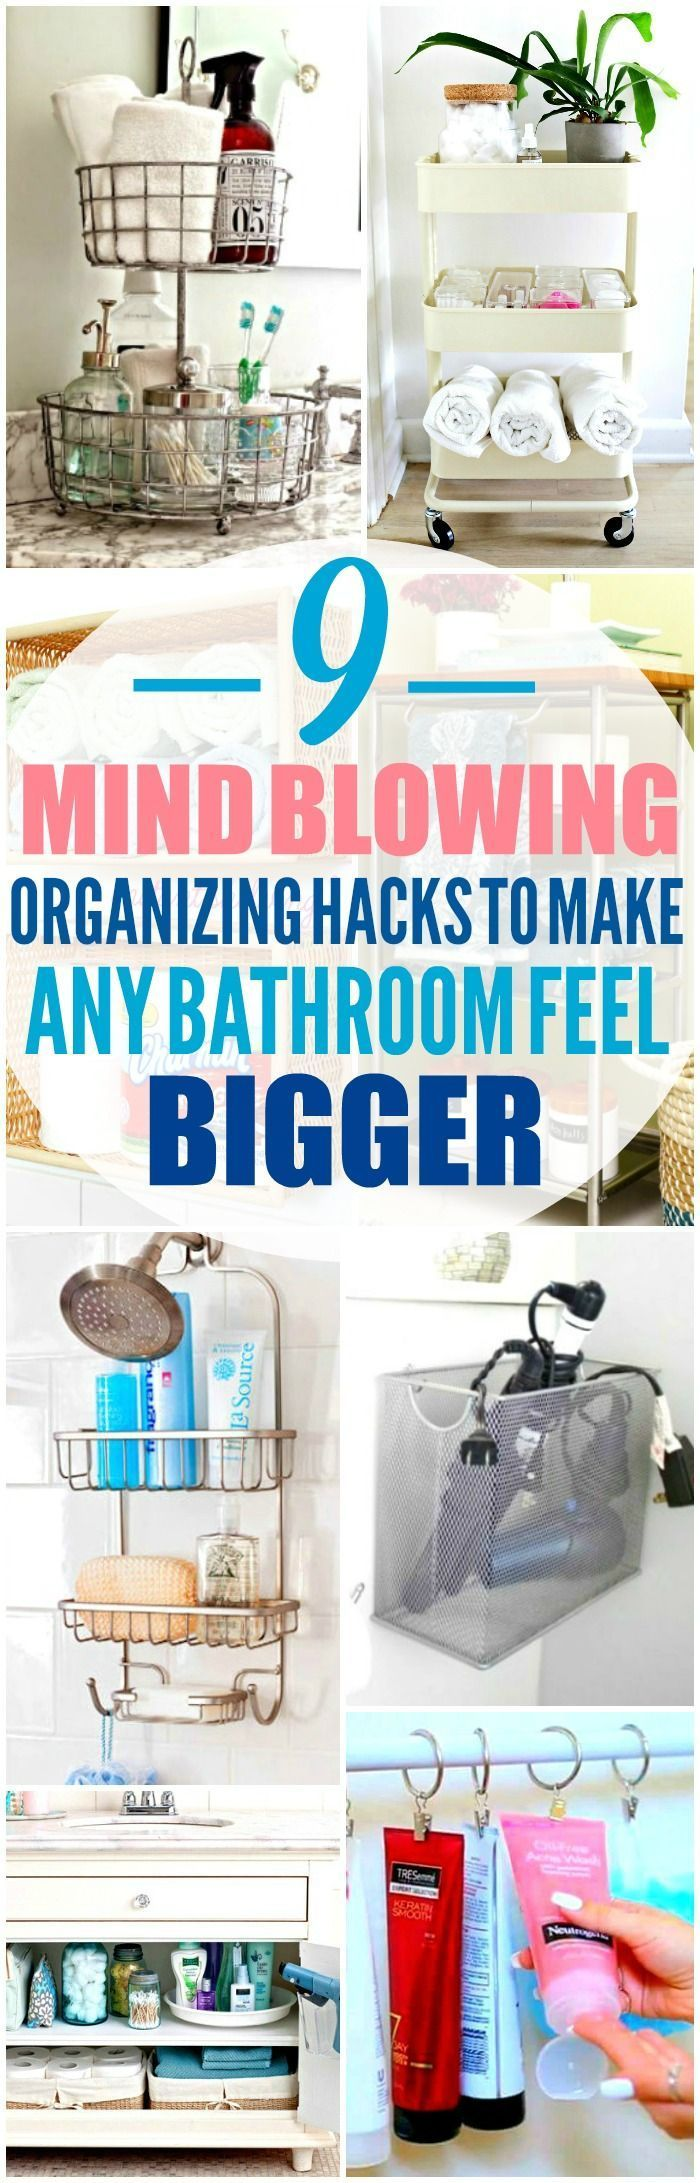 9 Super Clever Ways to Create Extra Space in Your Tiny Bathroom. 17 Best ideas about Bathroom Organization on Pinterest